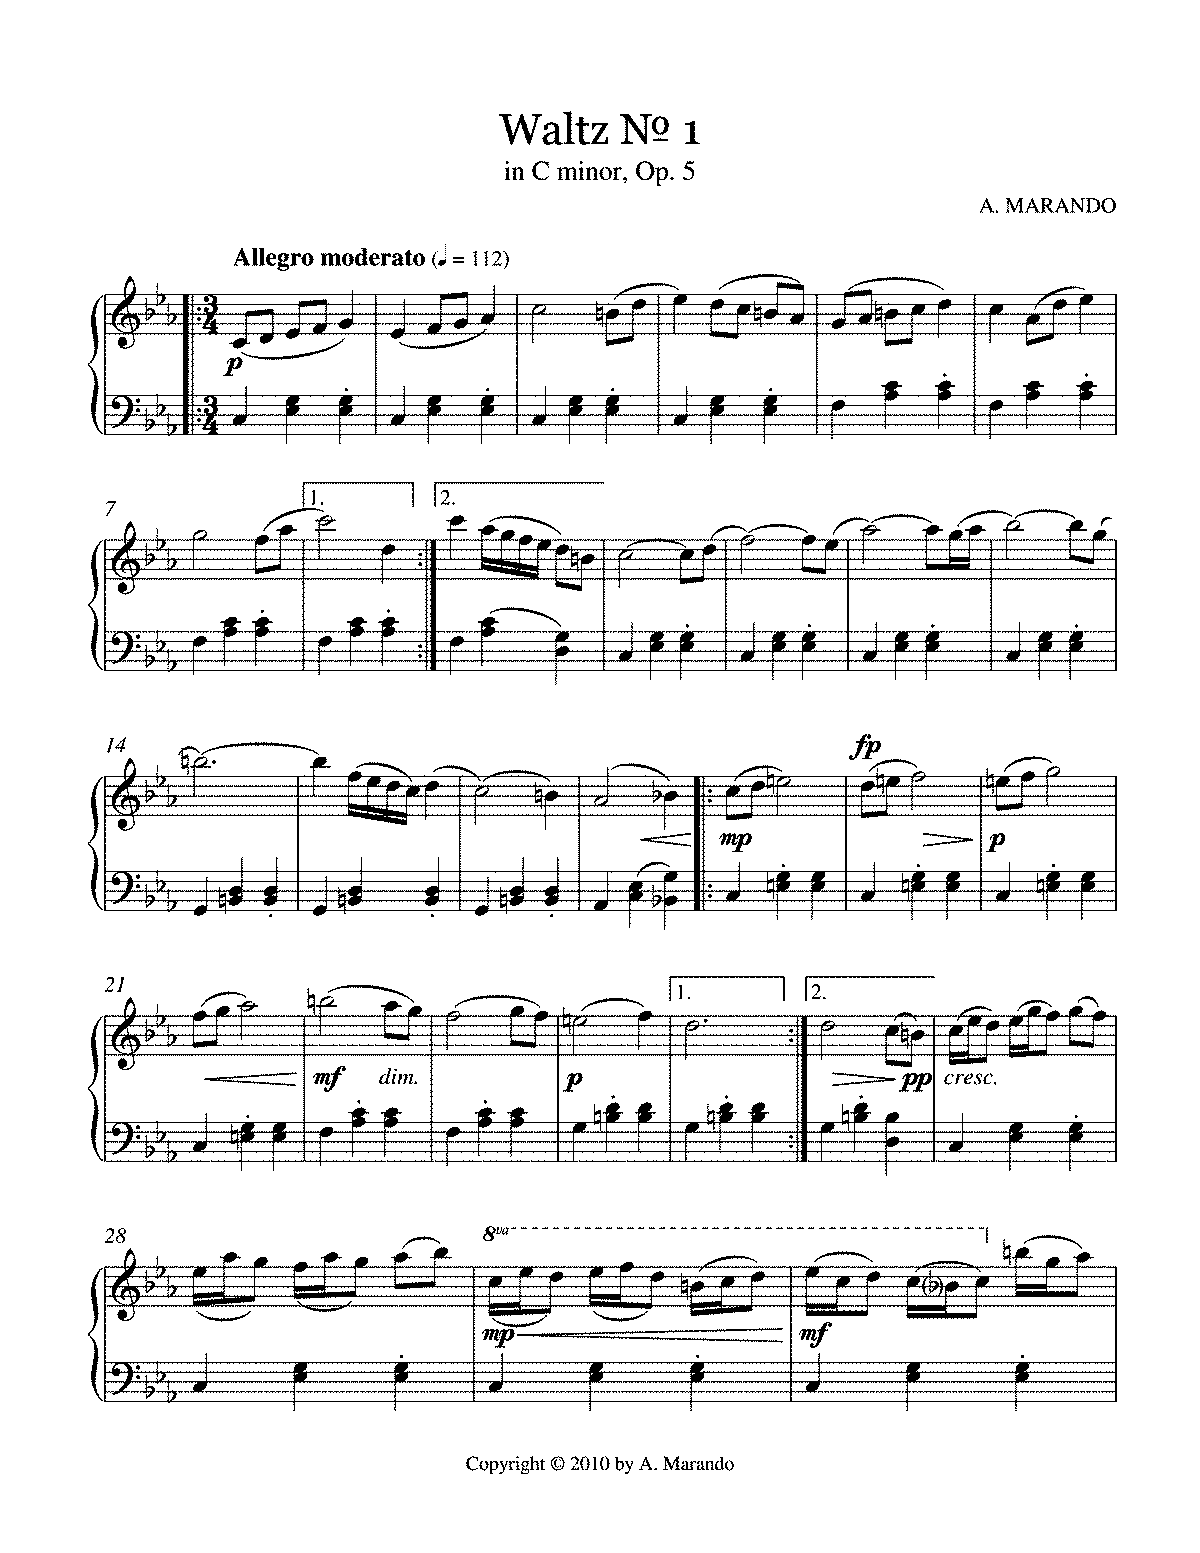 PMLP132796-Op. 5 - Waltz No. 1 in C minor.pdf